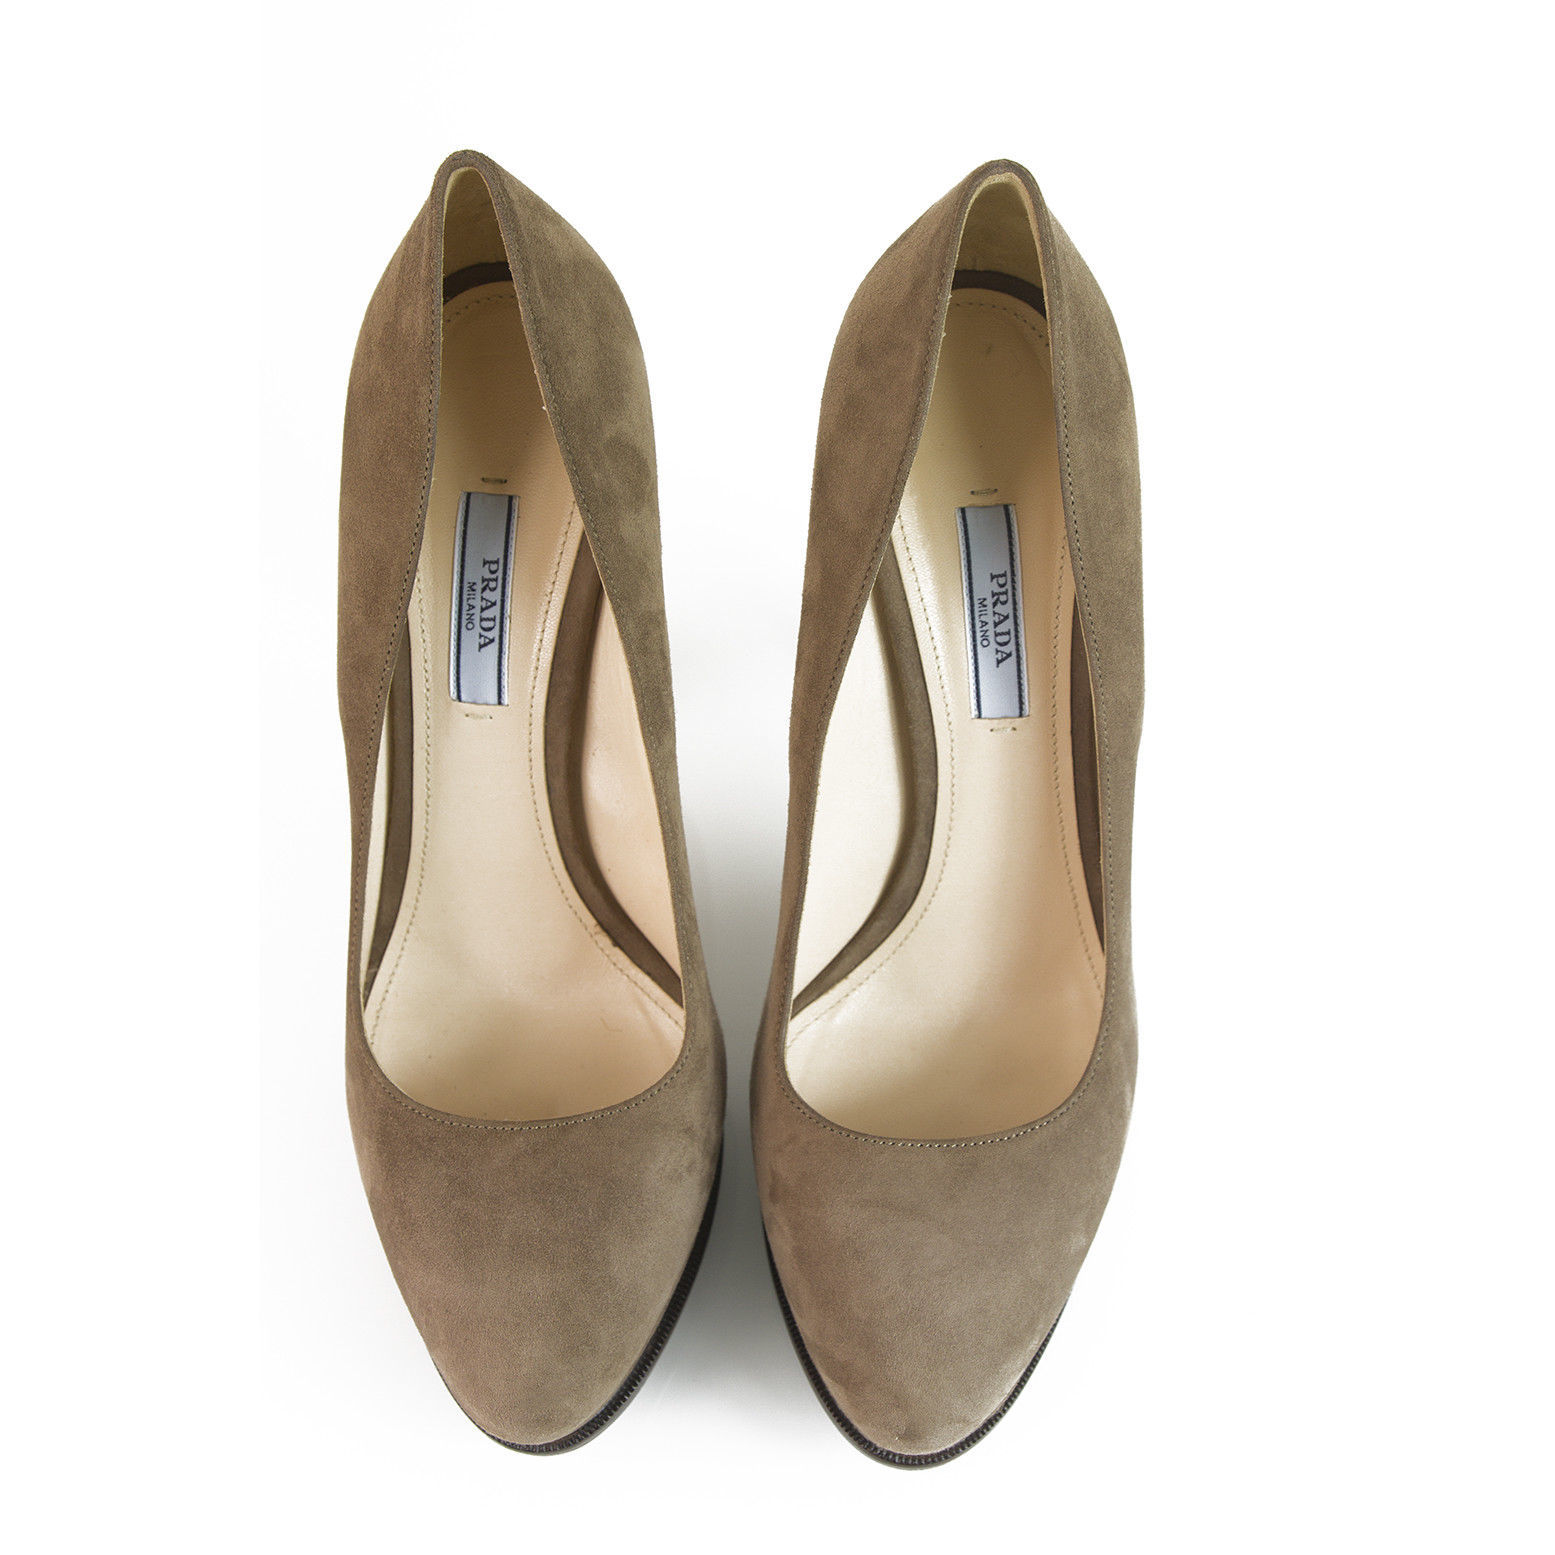 Prada Taupe Brown Suede Leather Classic Pumps Round Toe Slim Heel Platform sz 40 image 2